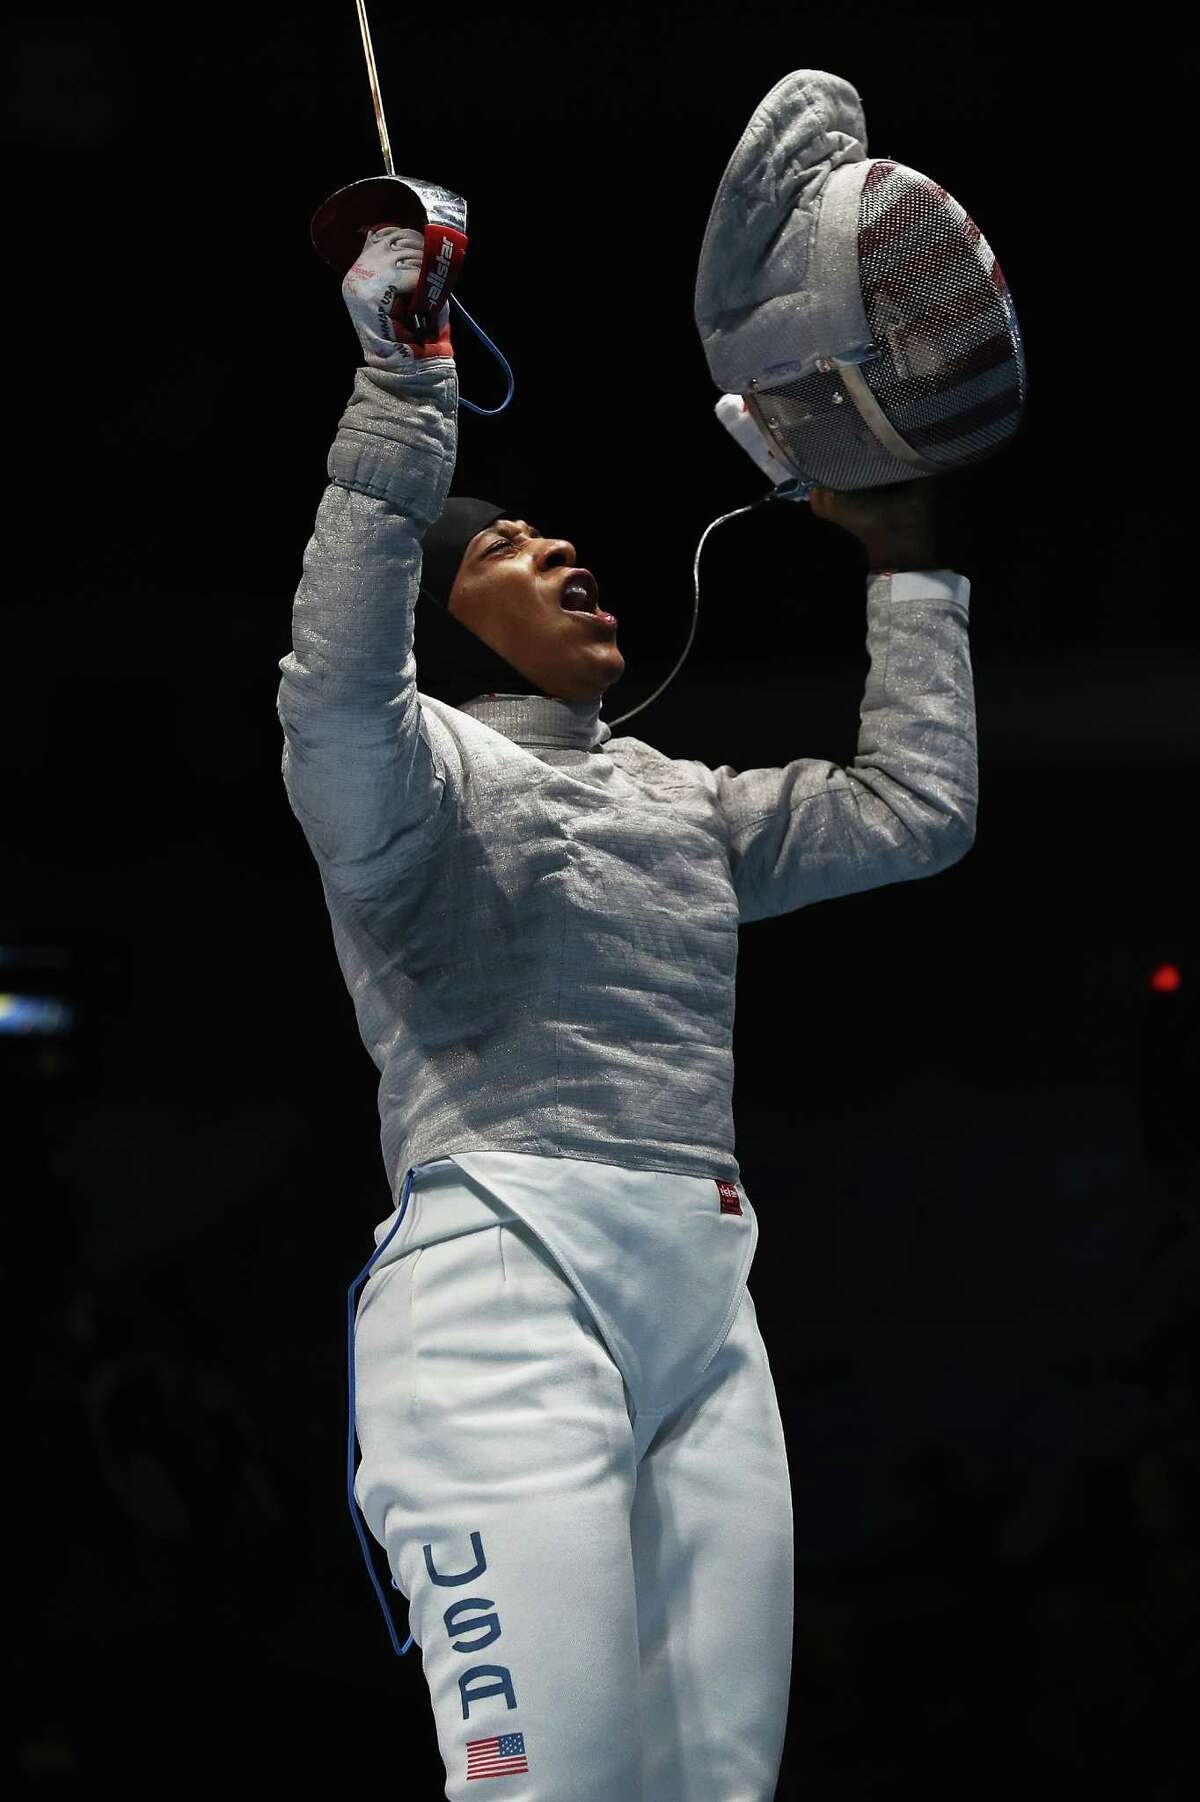 RIO DE JANEIRO, BRAZIL - AUGUST 08: Ibtihaj Muhammad of the United States celebrates victory over Olena Kravatska of Ukraine during the Women's Individual Sabre on Day 3 of the Rio 2016 Olympic Games at Carioca Arena 3 on August 8, 2016 in Rio de Janeiro, Brazil.